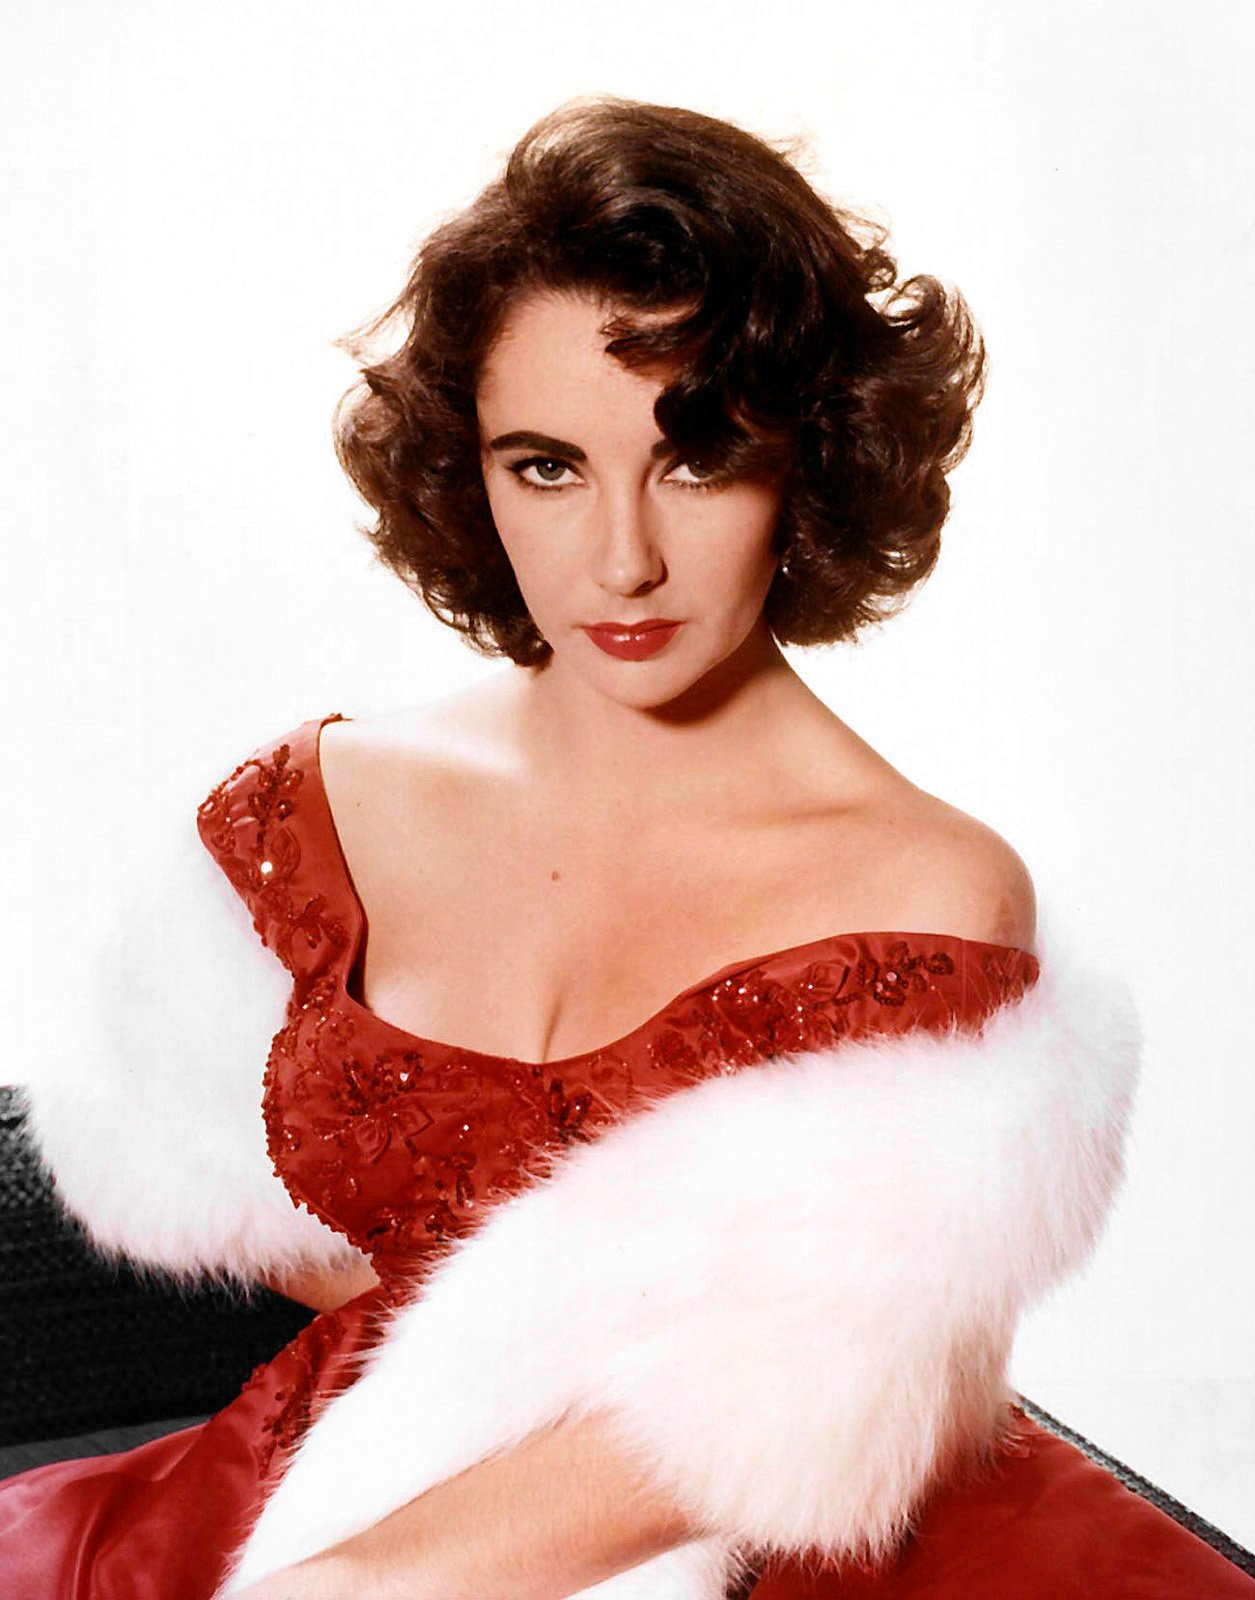 Photo de publicité d'Elizabeth Taylor 1955. | Photo : Wikimedia Commons